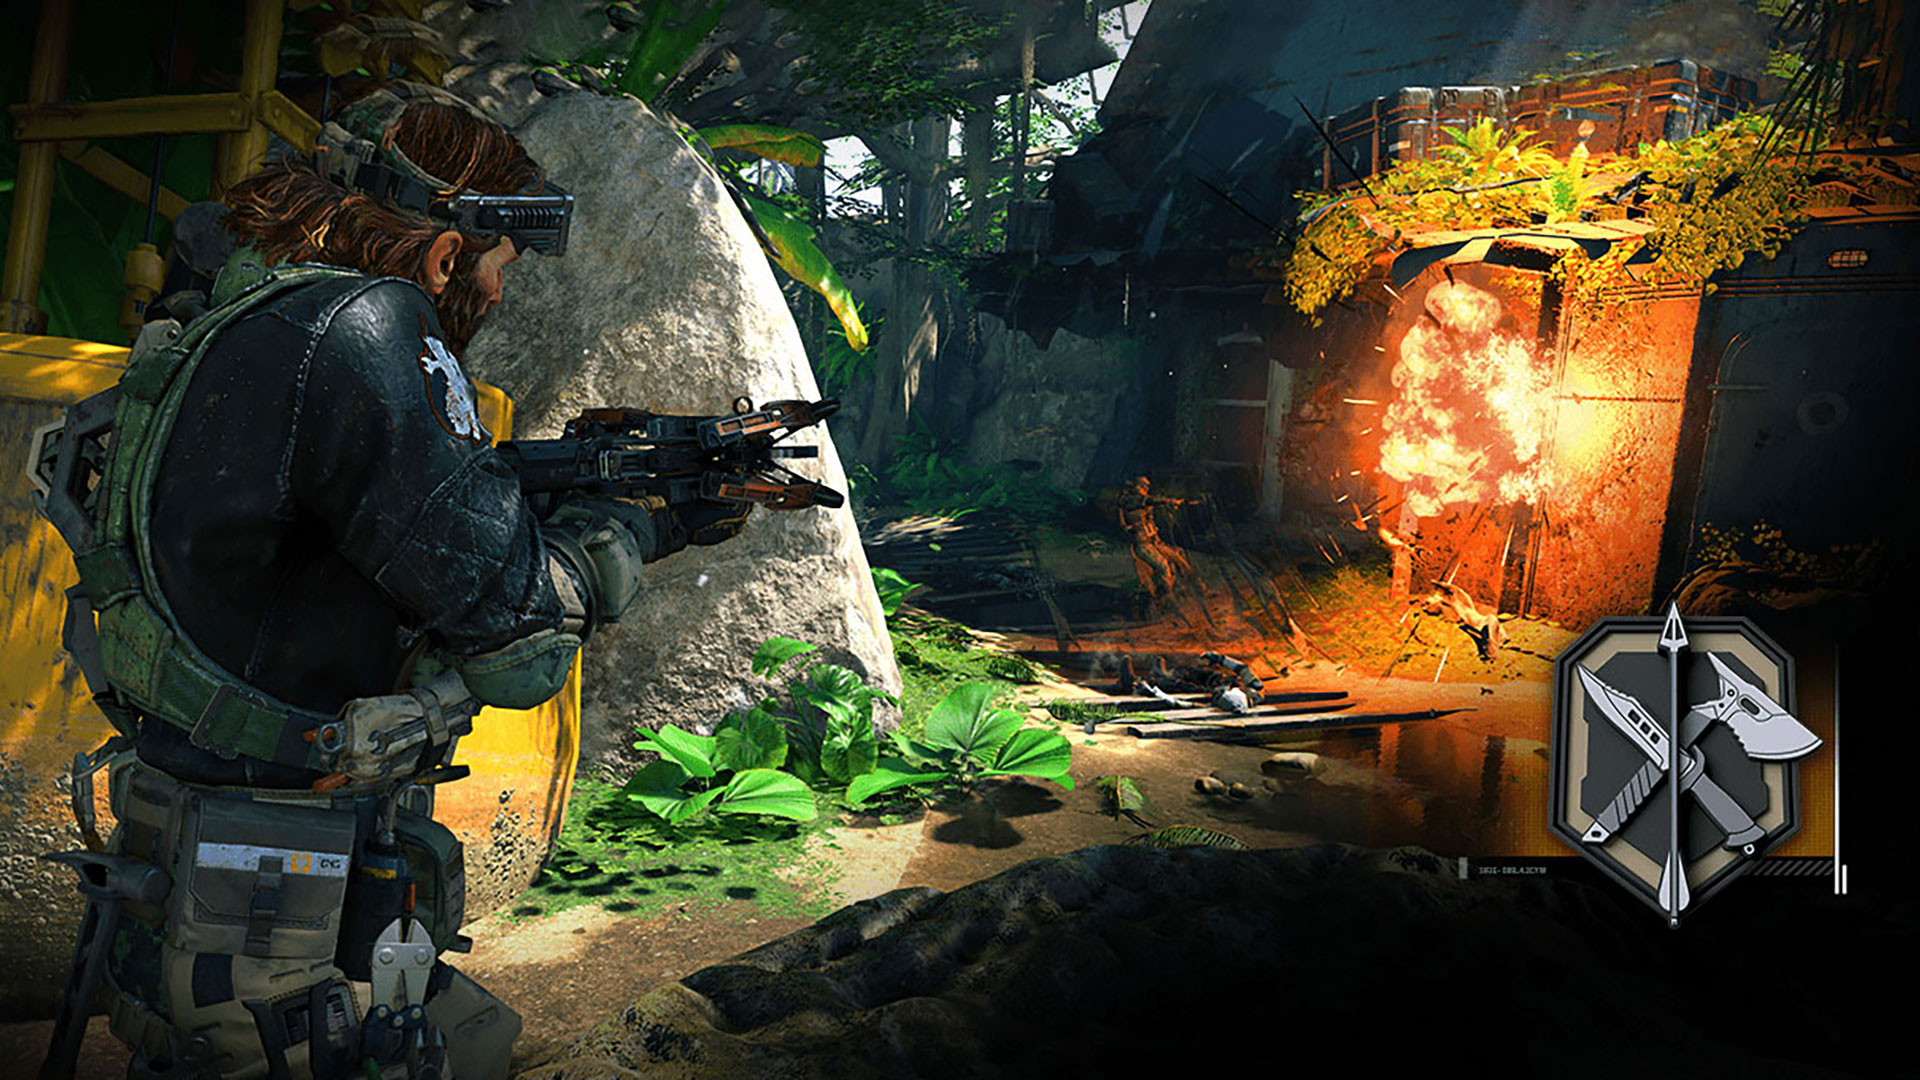 This Week in Call of Duty® - March 23 - Image 1